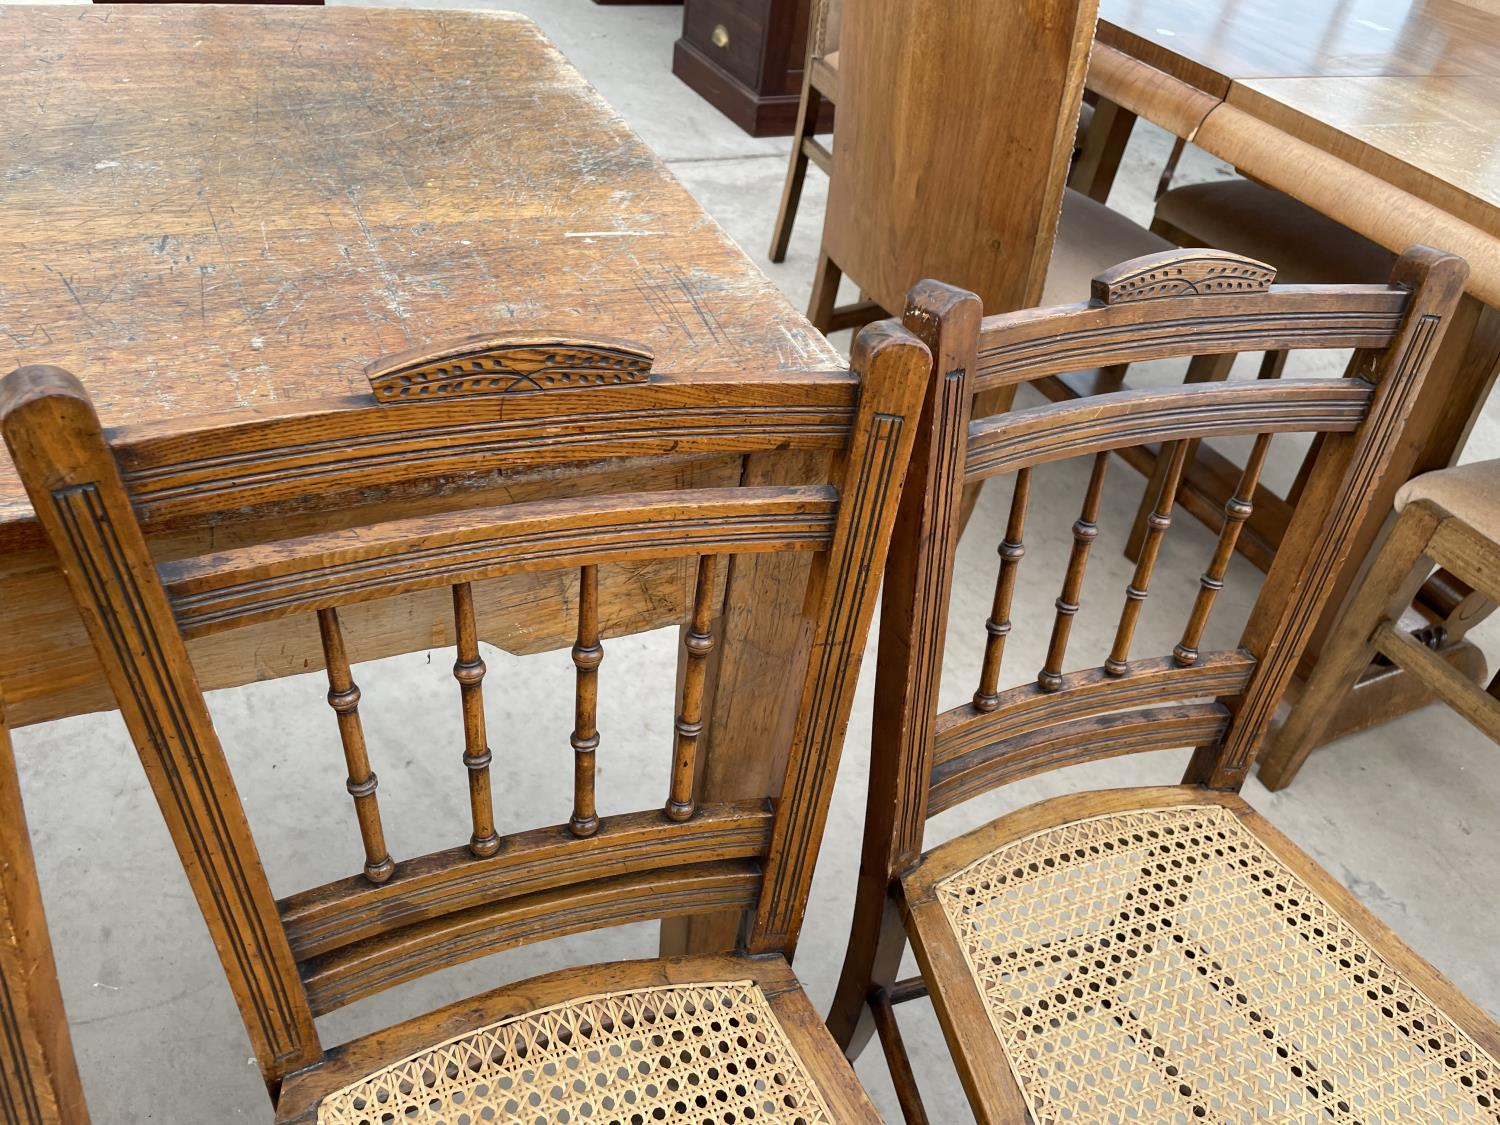 A SET OF FOUR EDWARDIAN BEDROOM CHAIRS WITH CANE SEATS - Image 4 of 5